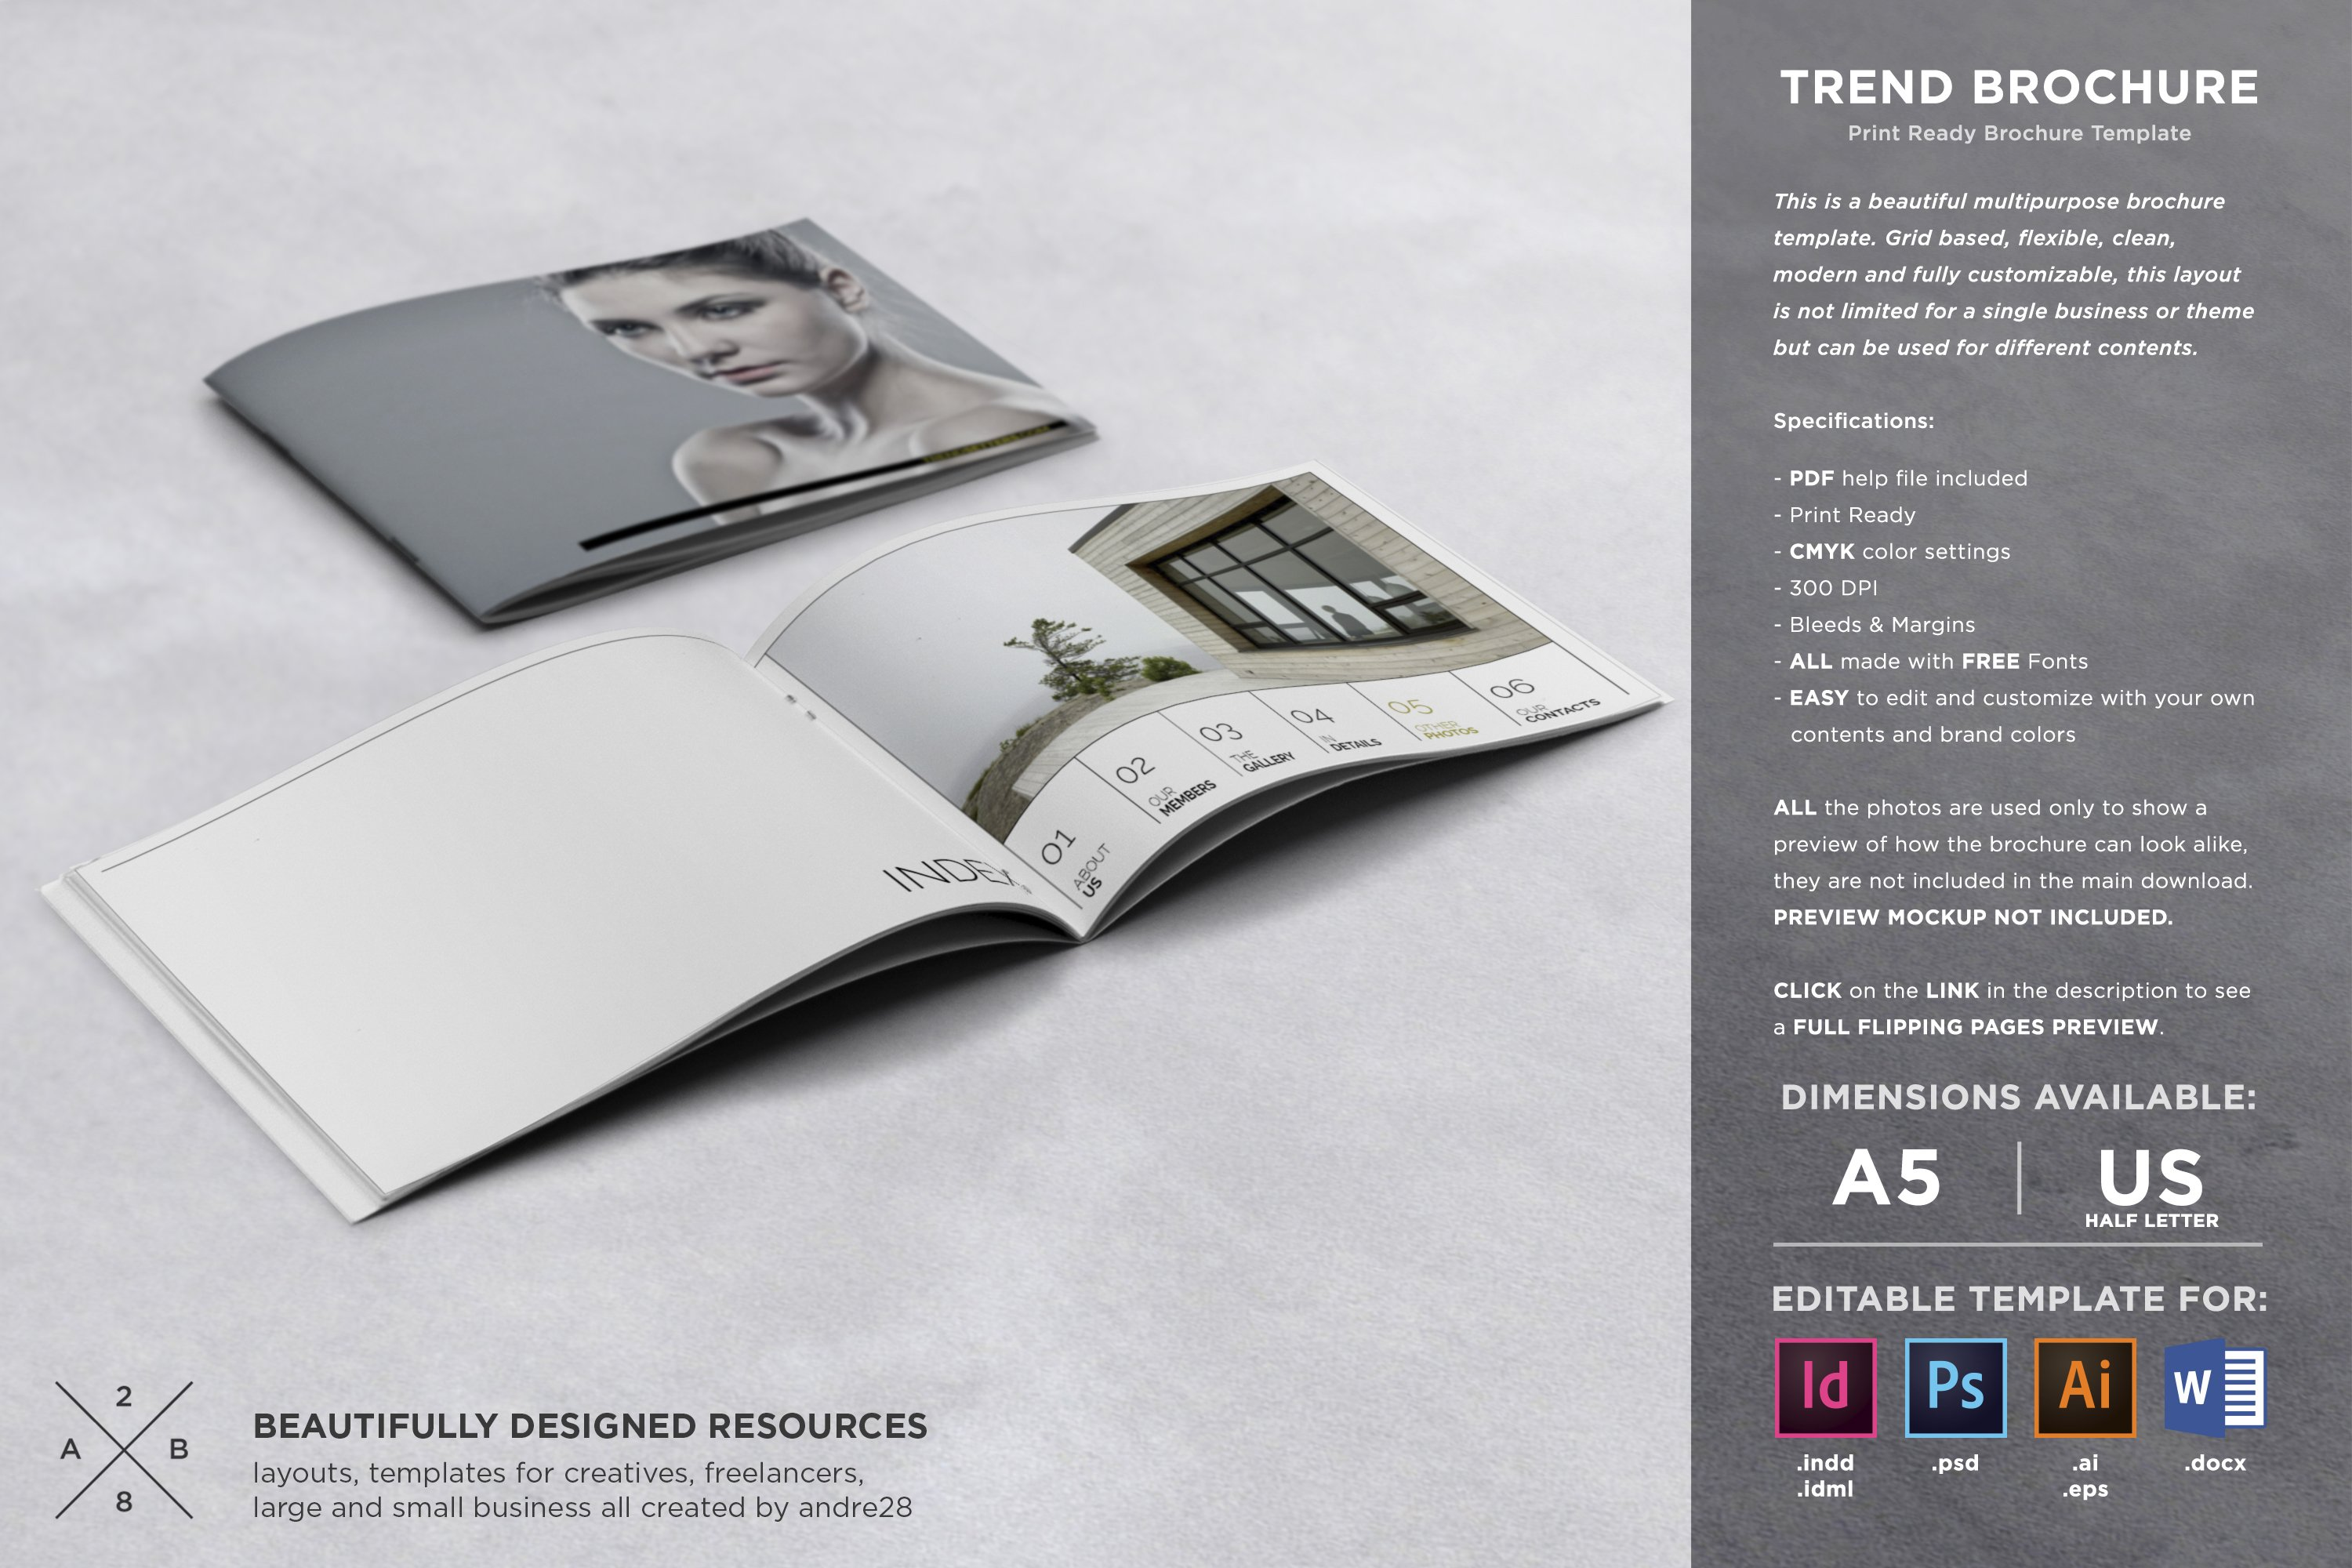 Trend Brochure Template Brochure Templates Creative Market - Free template brochure download